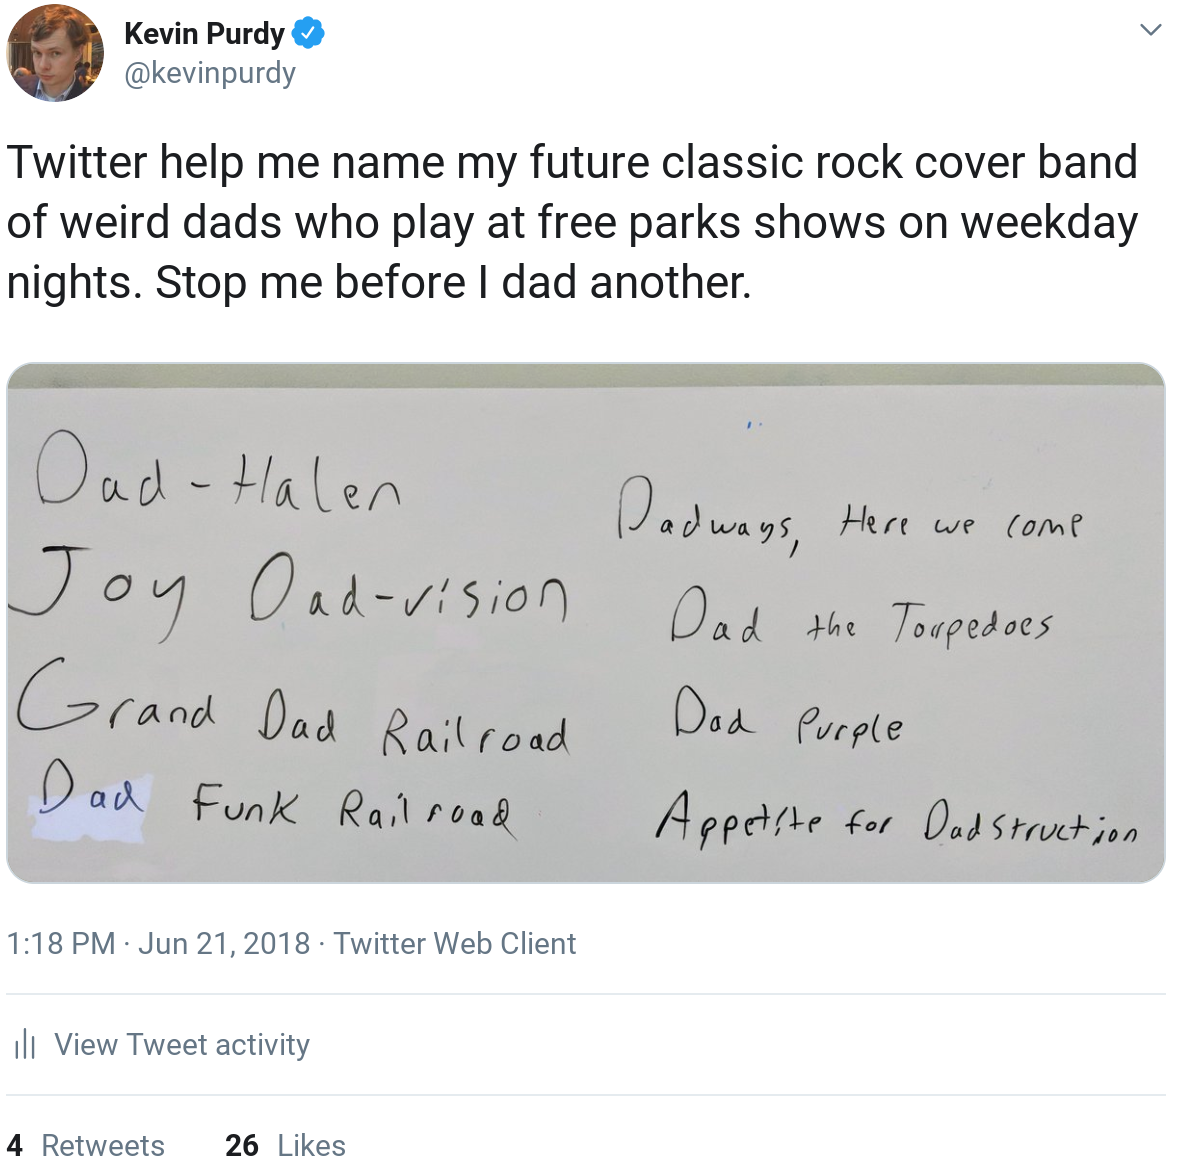 Twitter help me name my future classic rock cover band of weird dads who play at free parks shows on weekday nights. Stop me before I dad another.